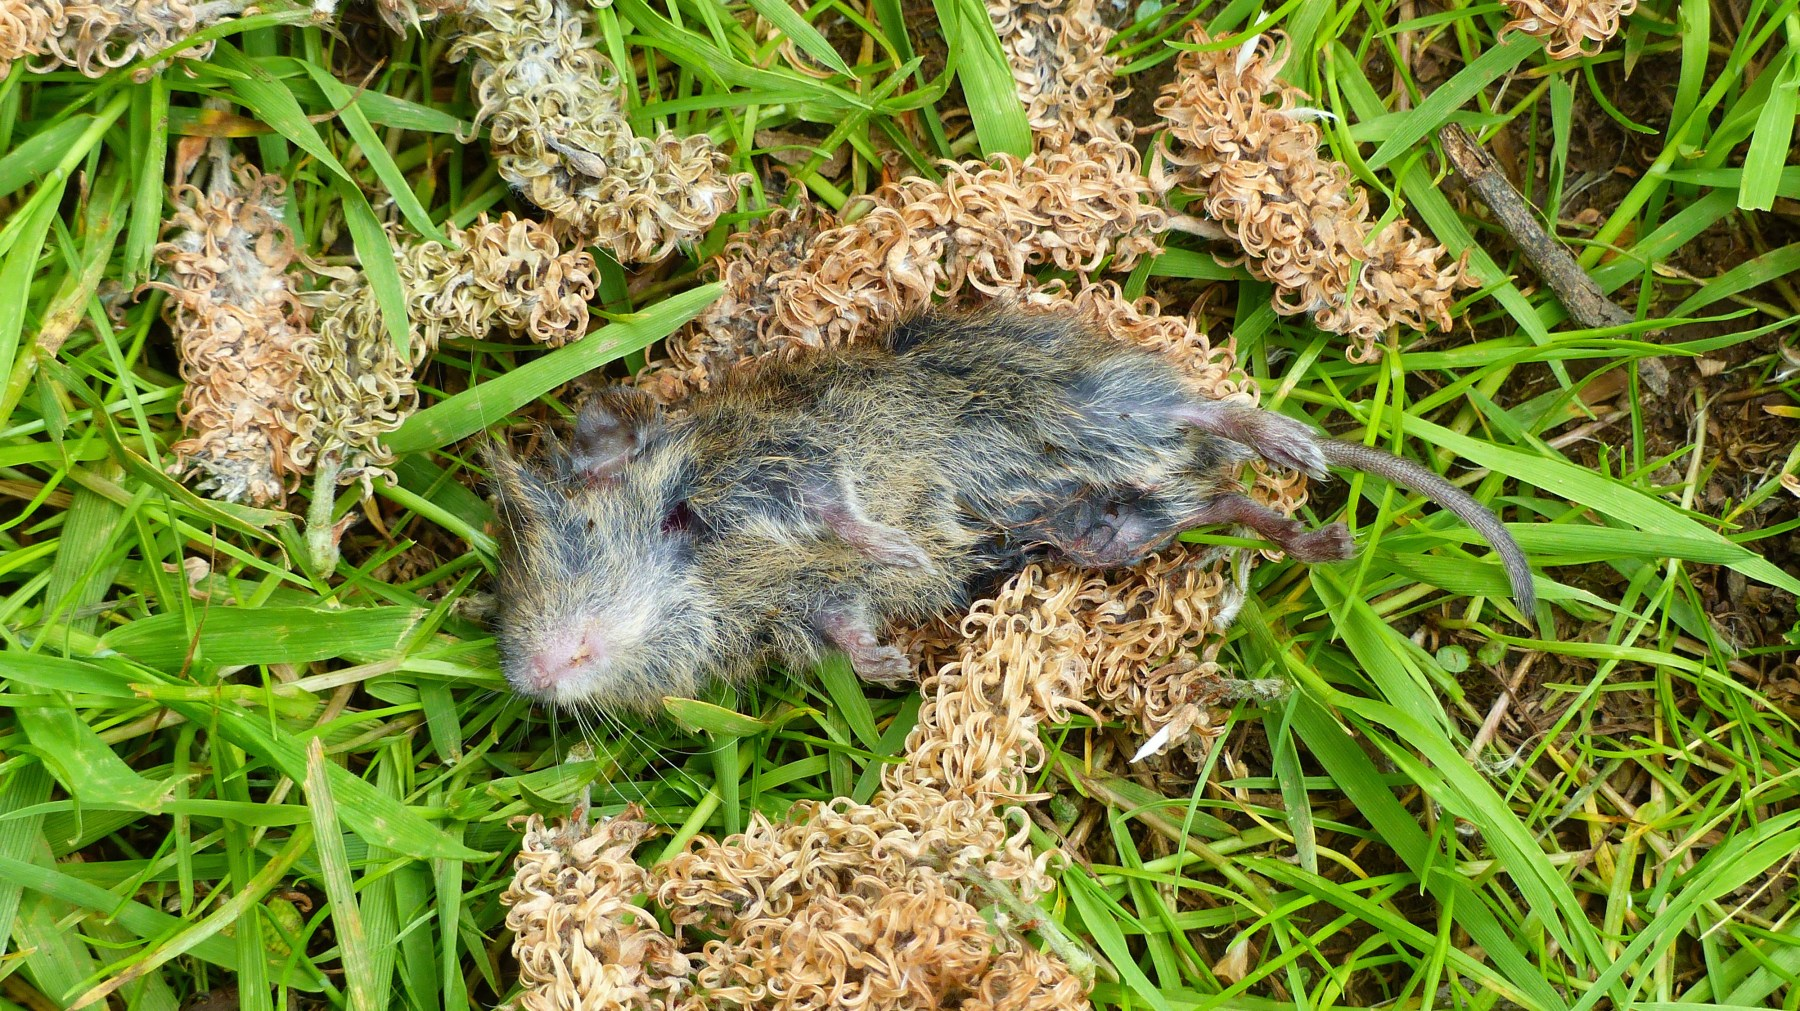 Dead vole, catkins and grass